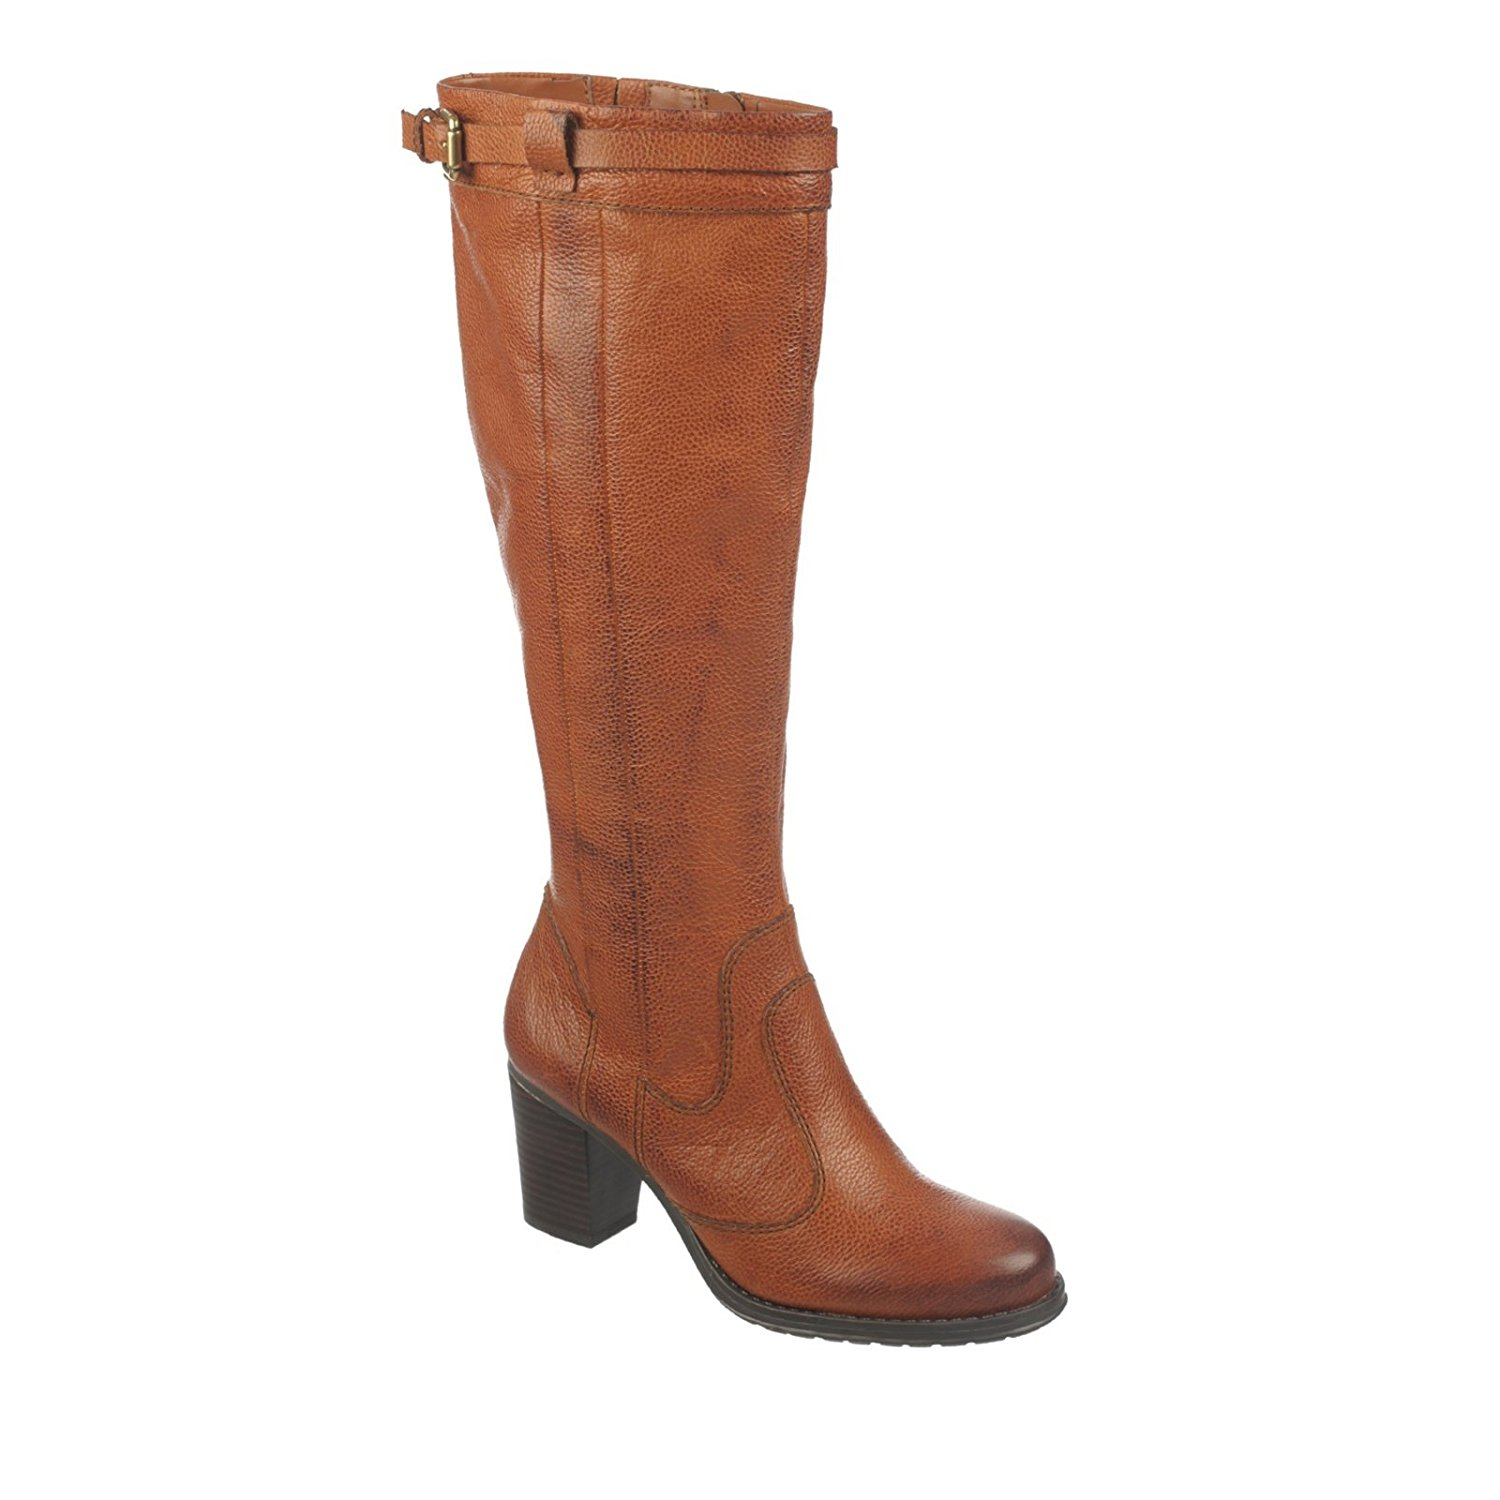 Naturalizer Damaris Women's Boots